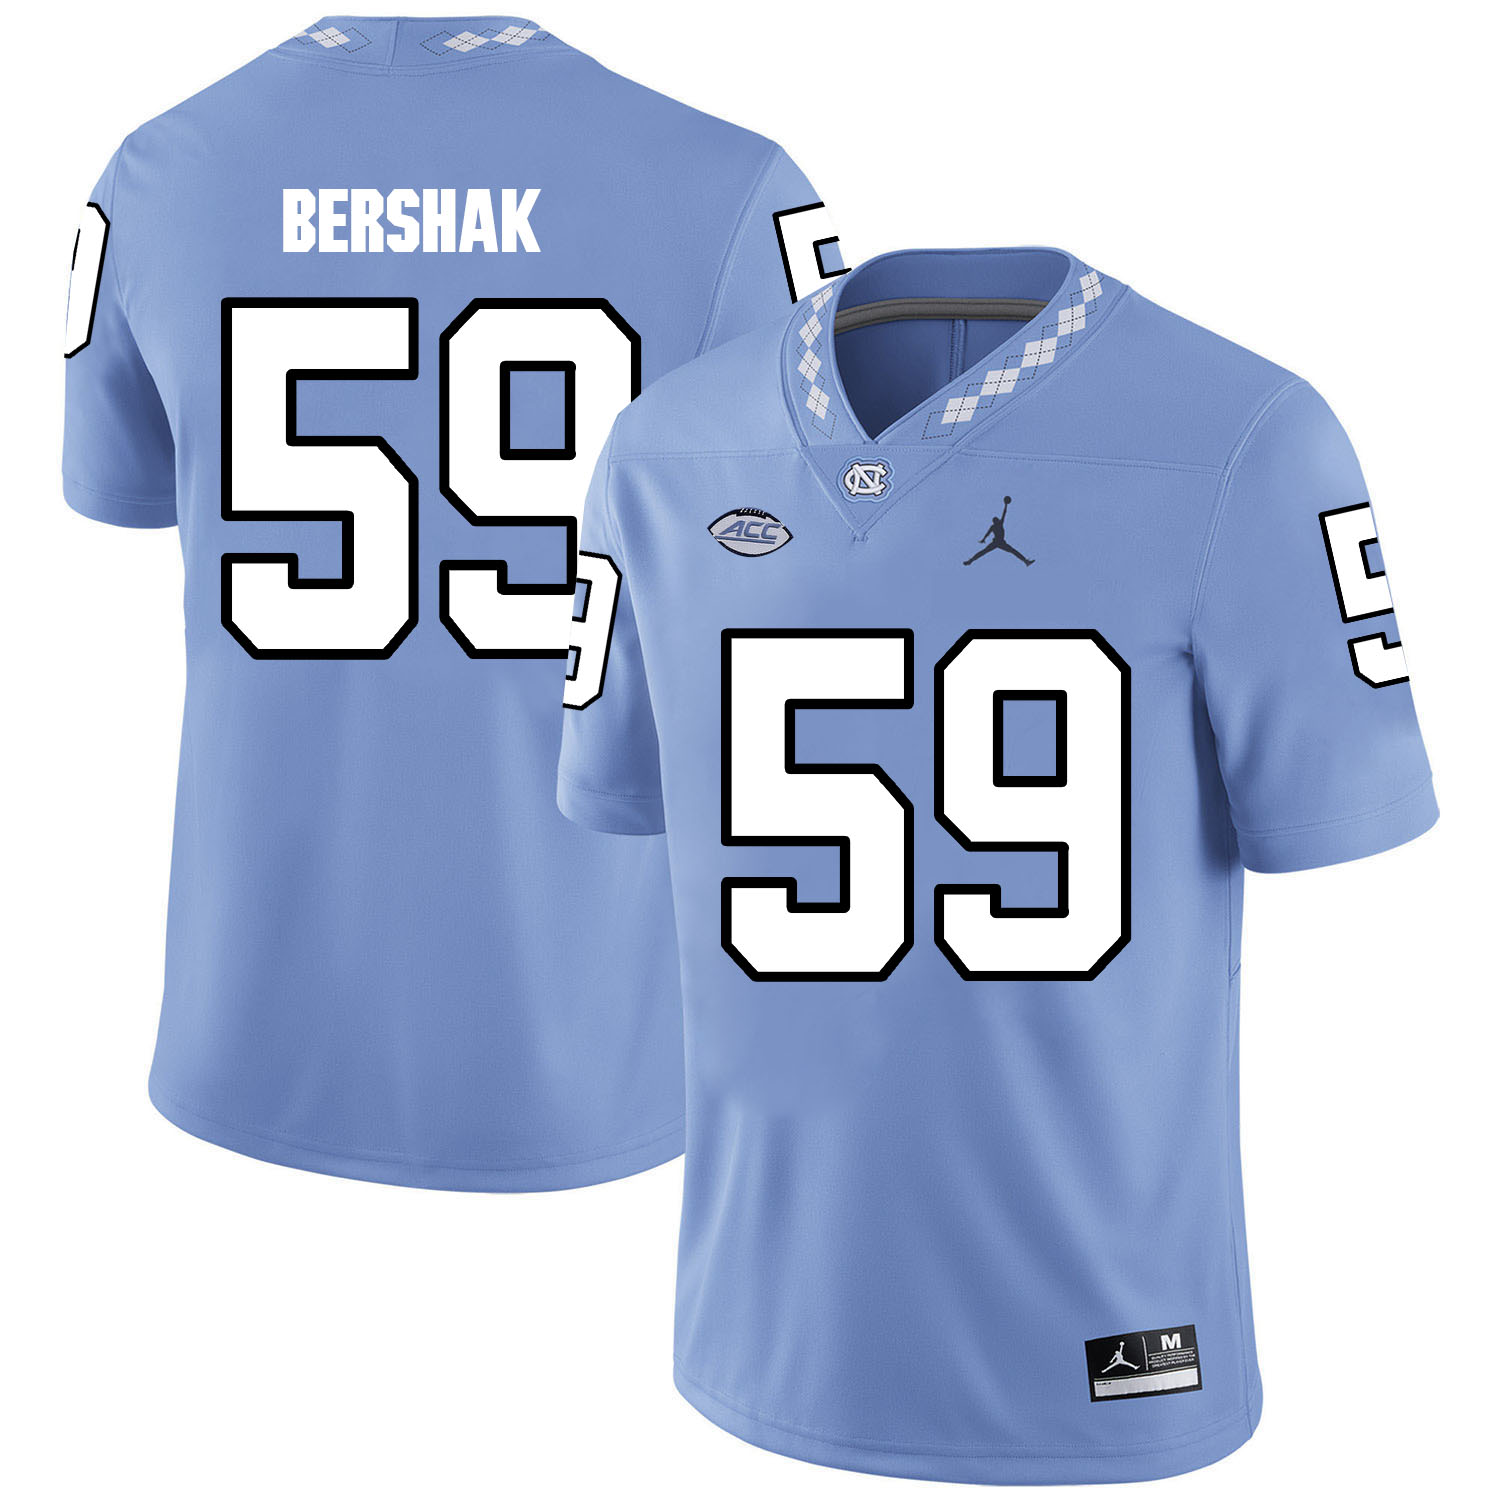 North Carolina Tar Heels 59 Andy Bershak Blue College Football Jersey